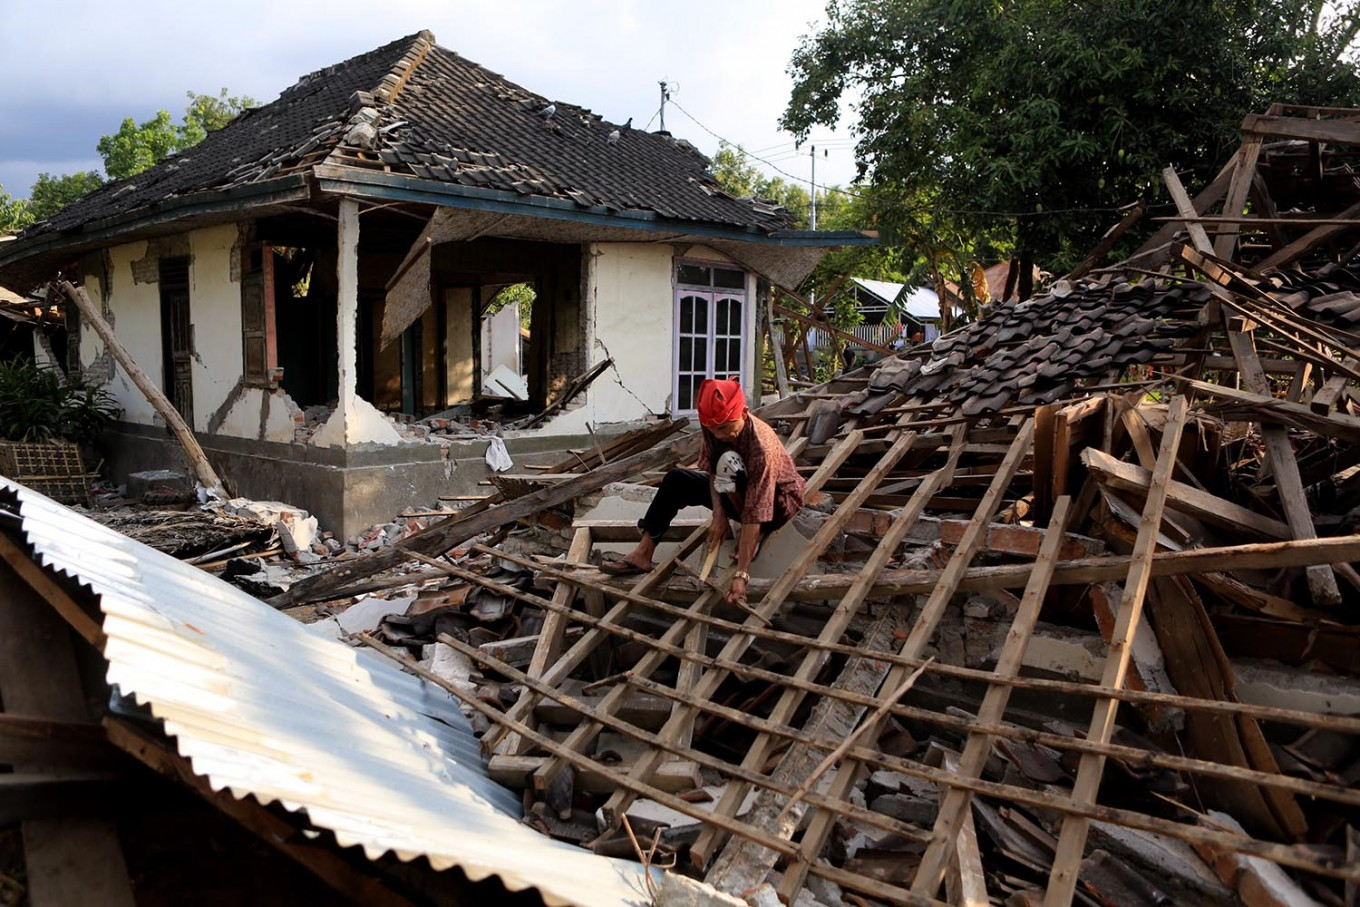 A villager looks for personal belongings after his home was destroyed in an earthquake in Bentek village, Gangga district, North Lombok, on Wednesday Aug. 8, 2018. JP/Seto Wardhana